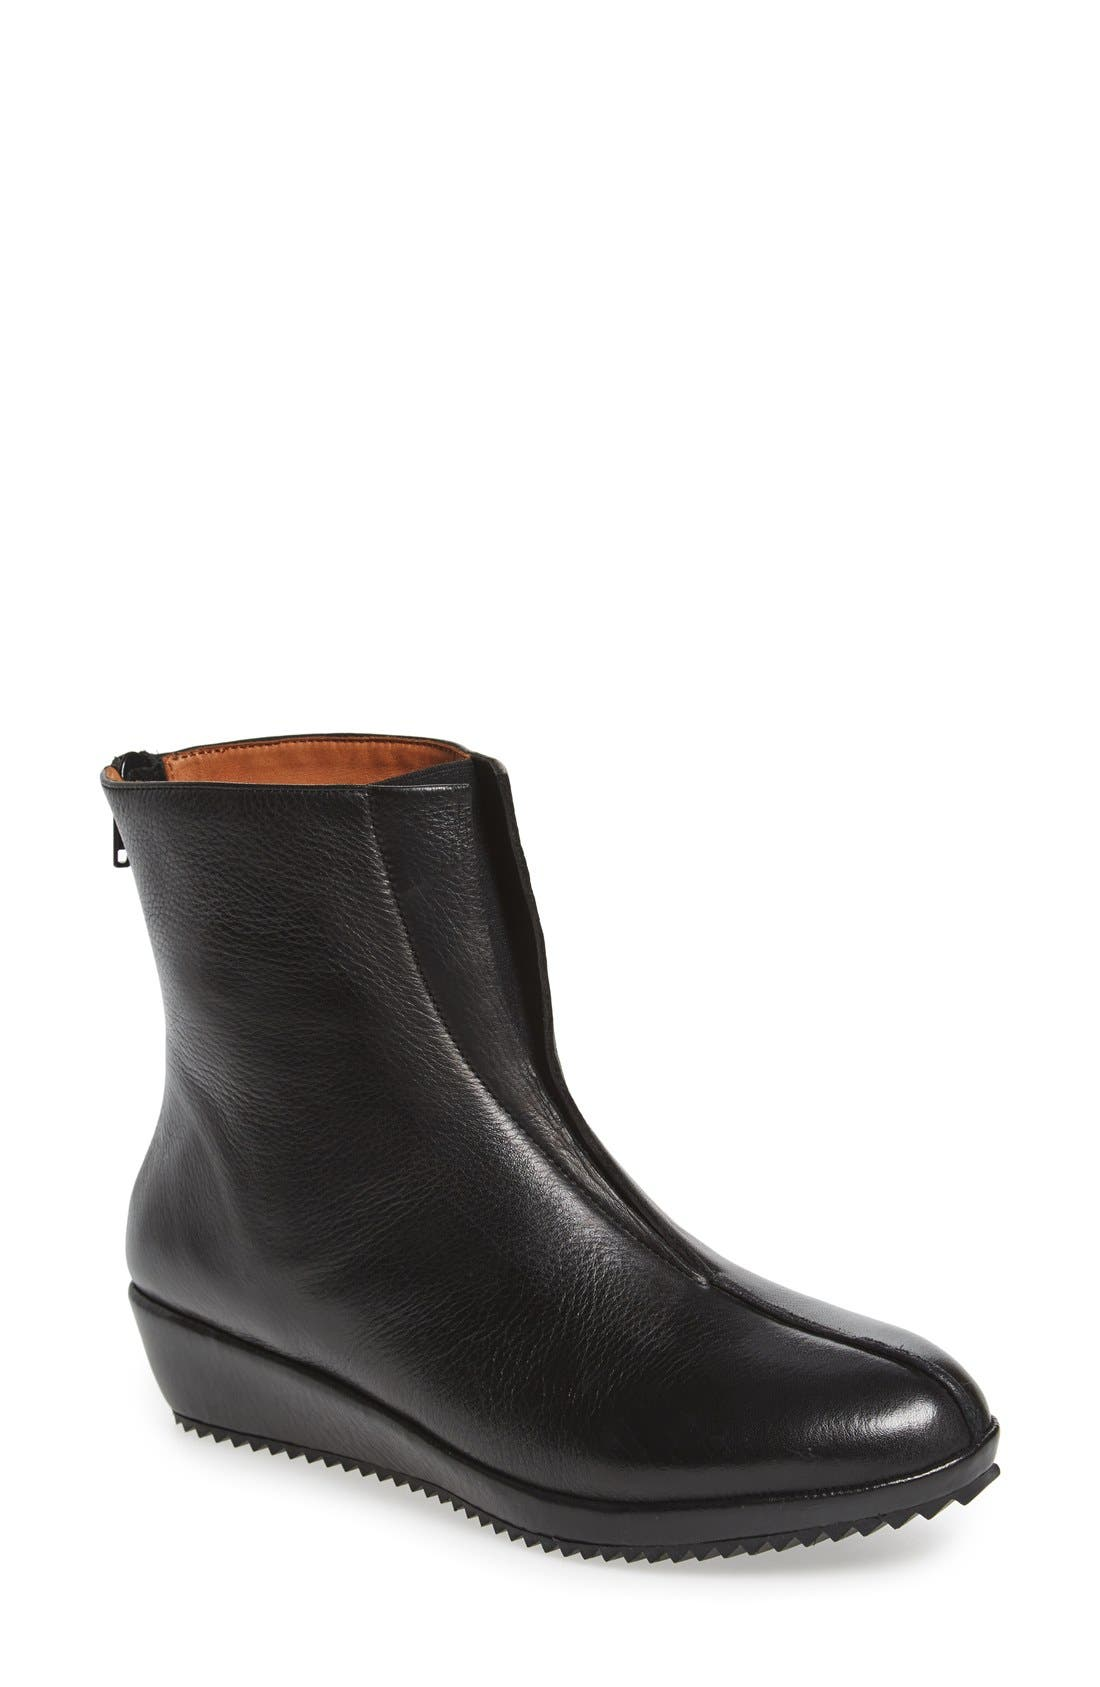 'Berneen' Wedge Bootie,                         Main,                         color, Black Leather